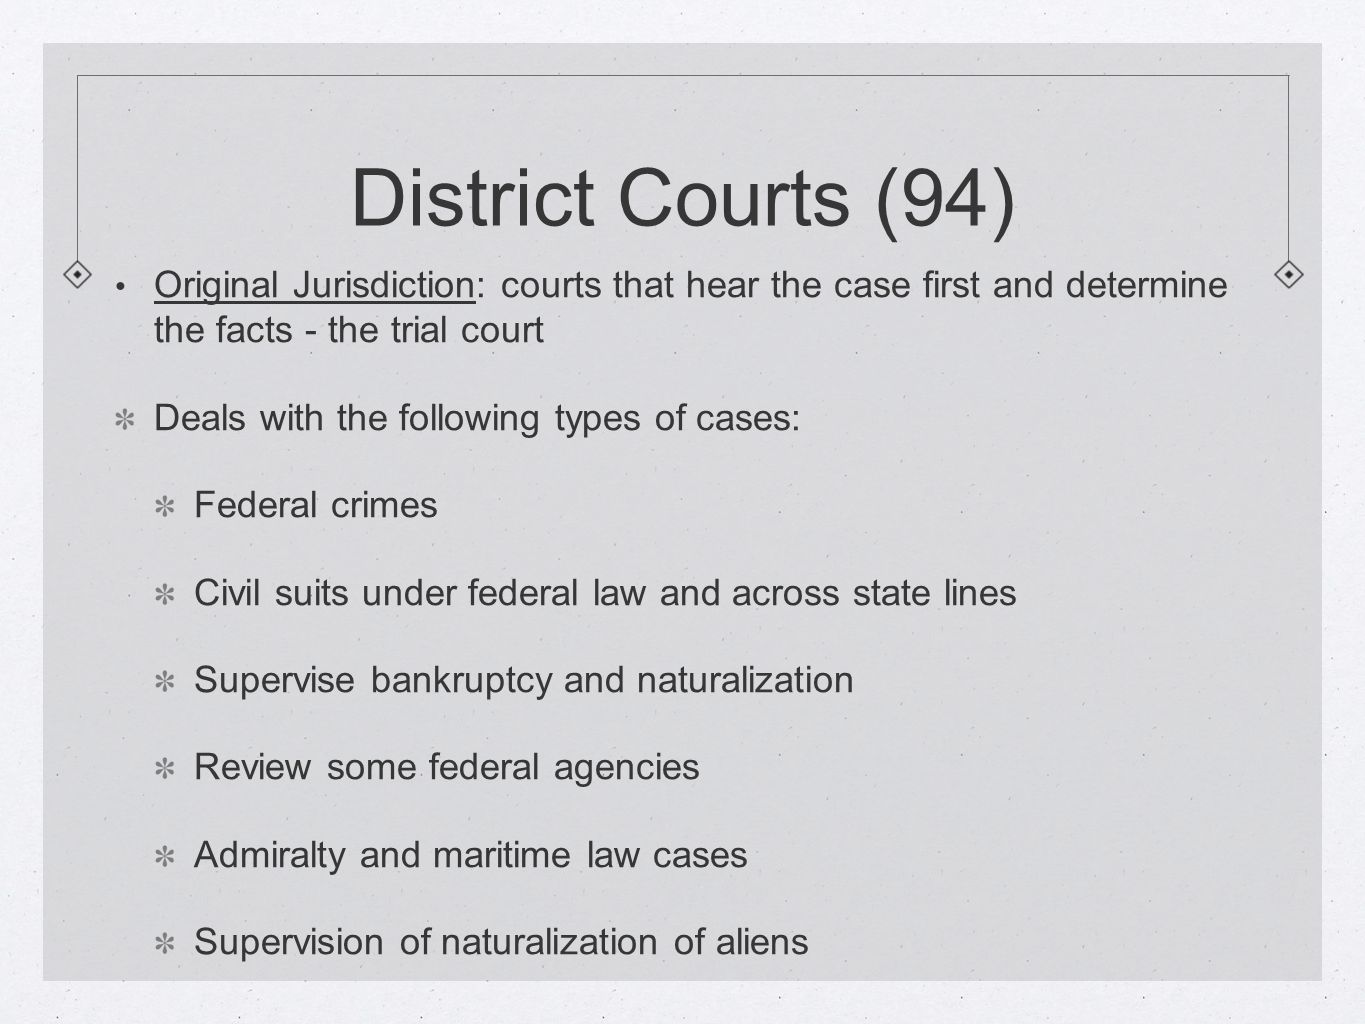 District Courts (94) Original Jurisdiction: courts that hear the case first and determine the facts - the trial court.